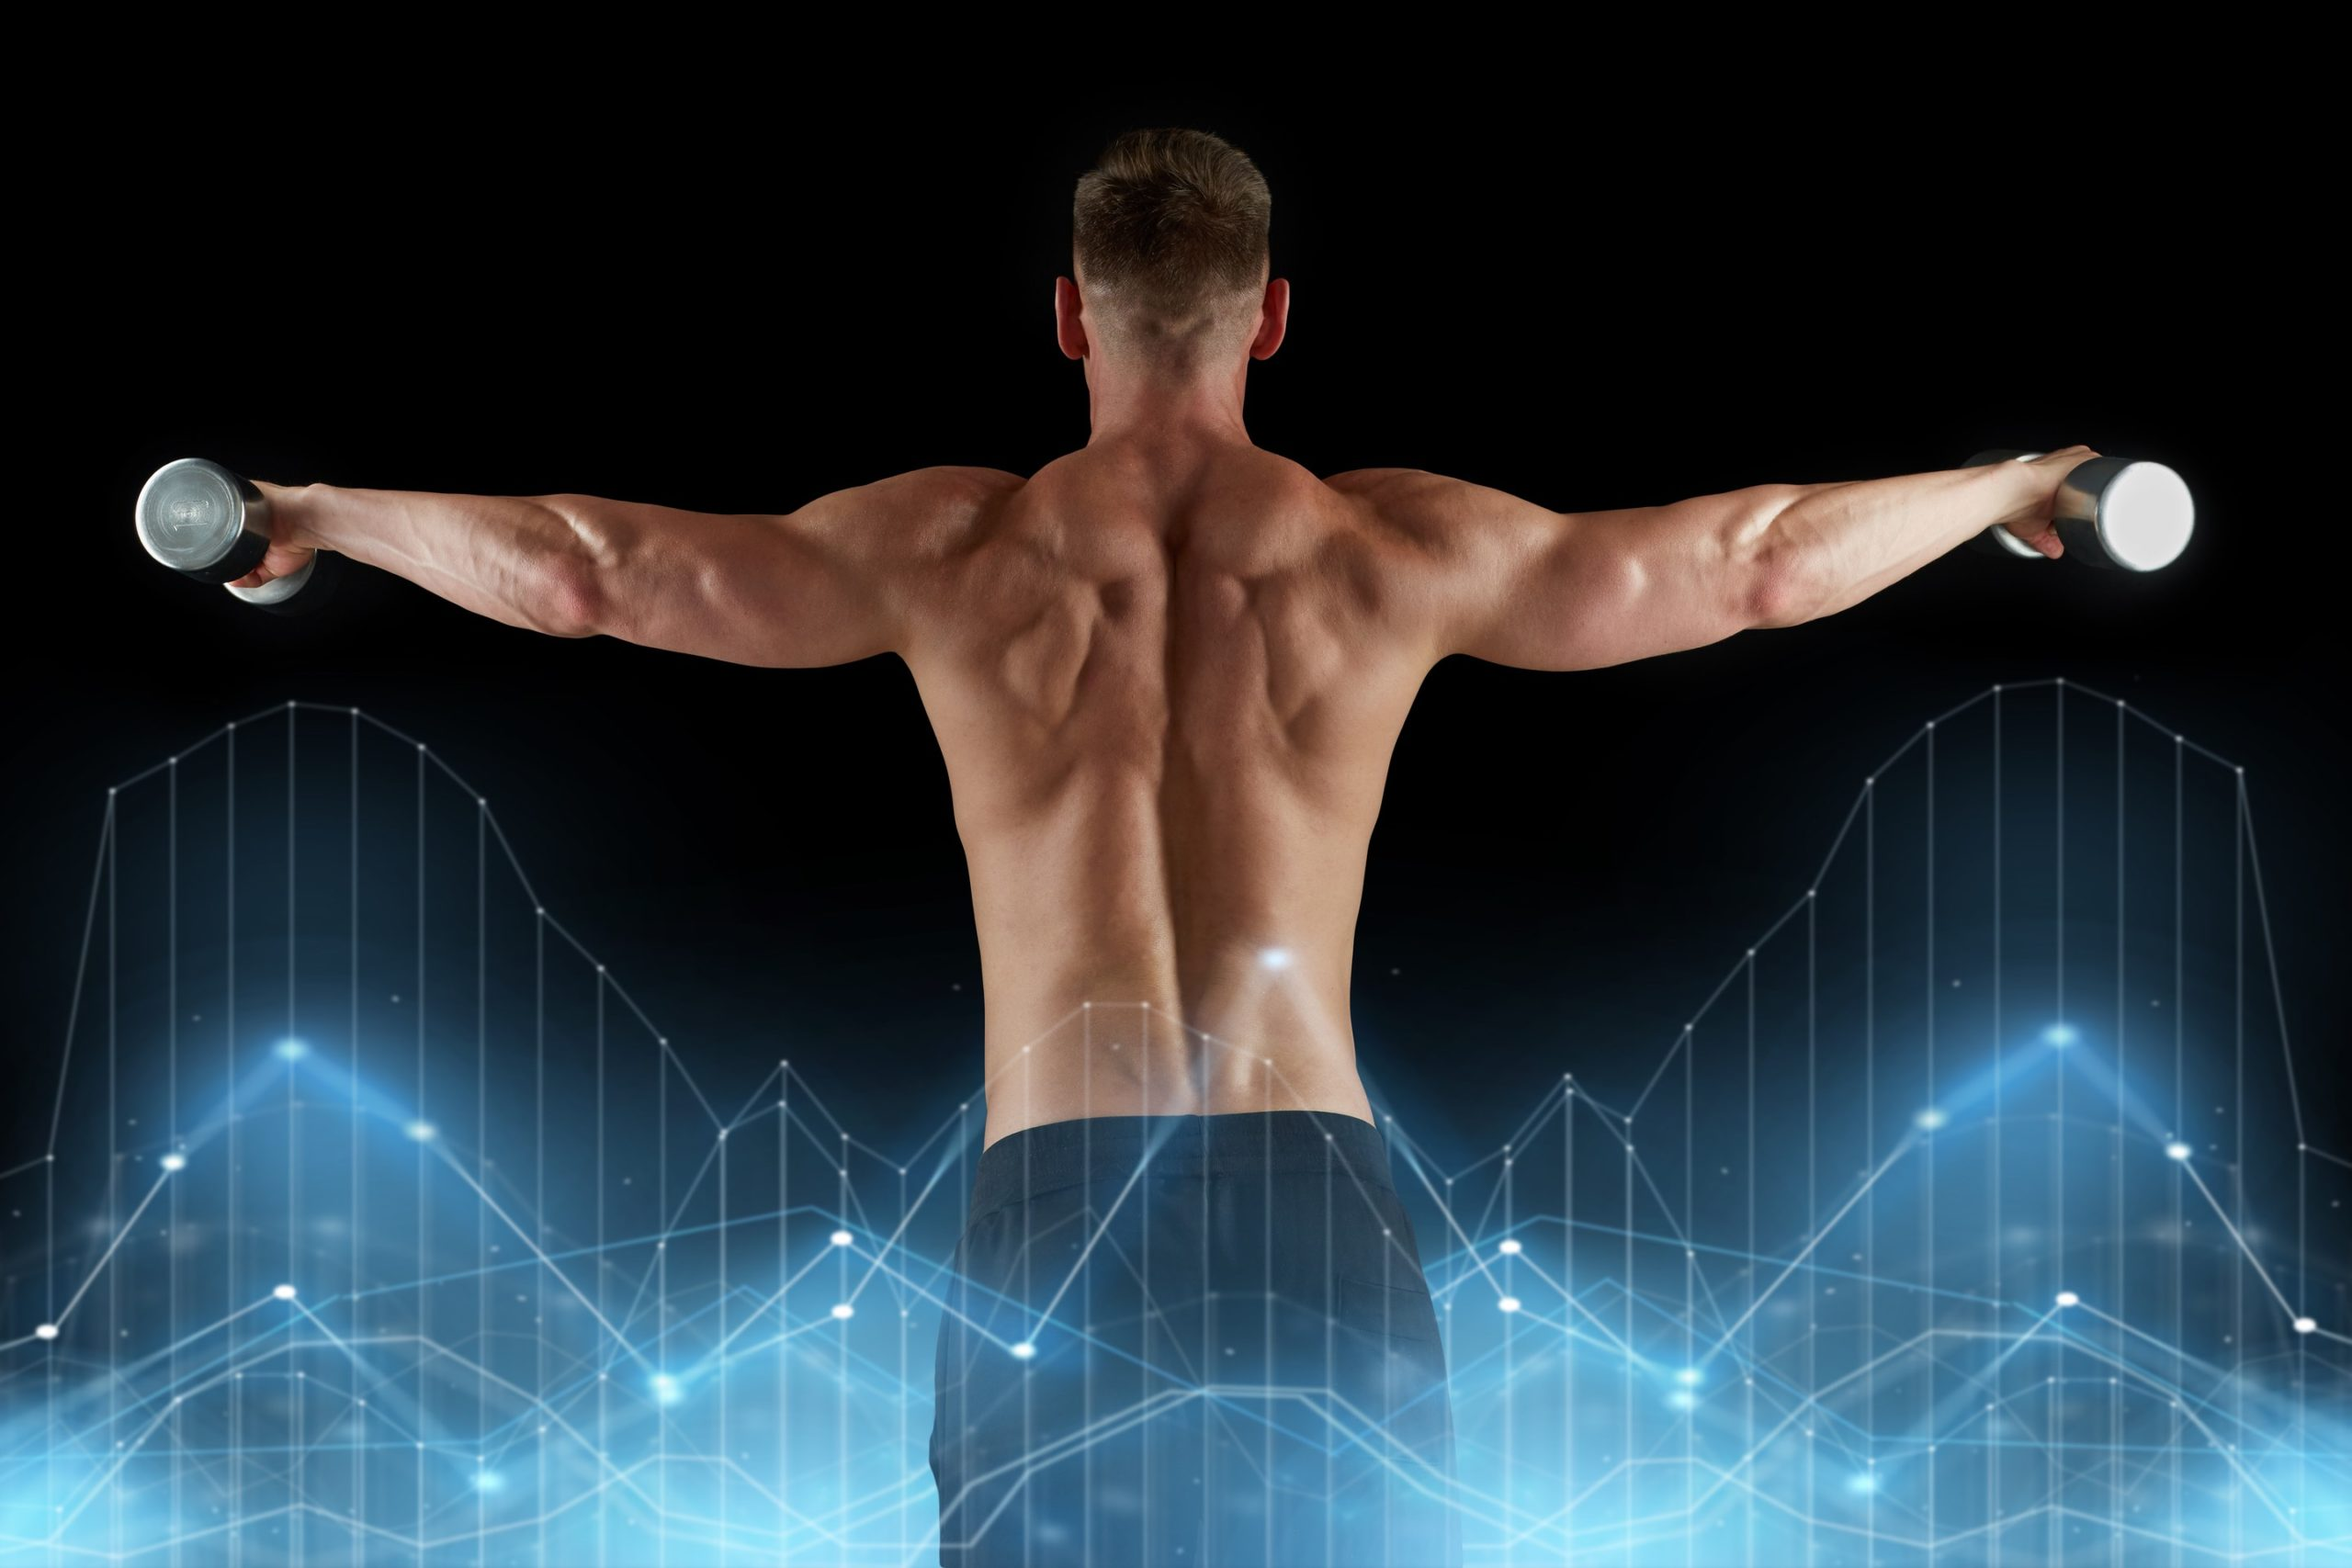 Five reasons for stagnant muscle growth